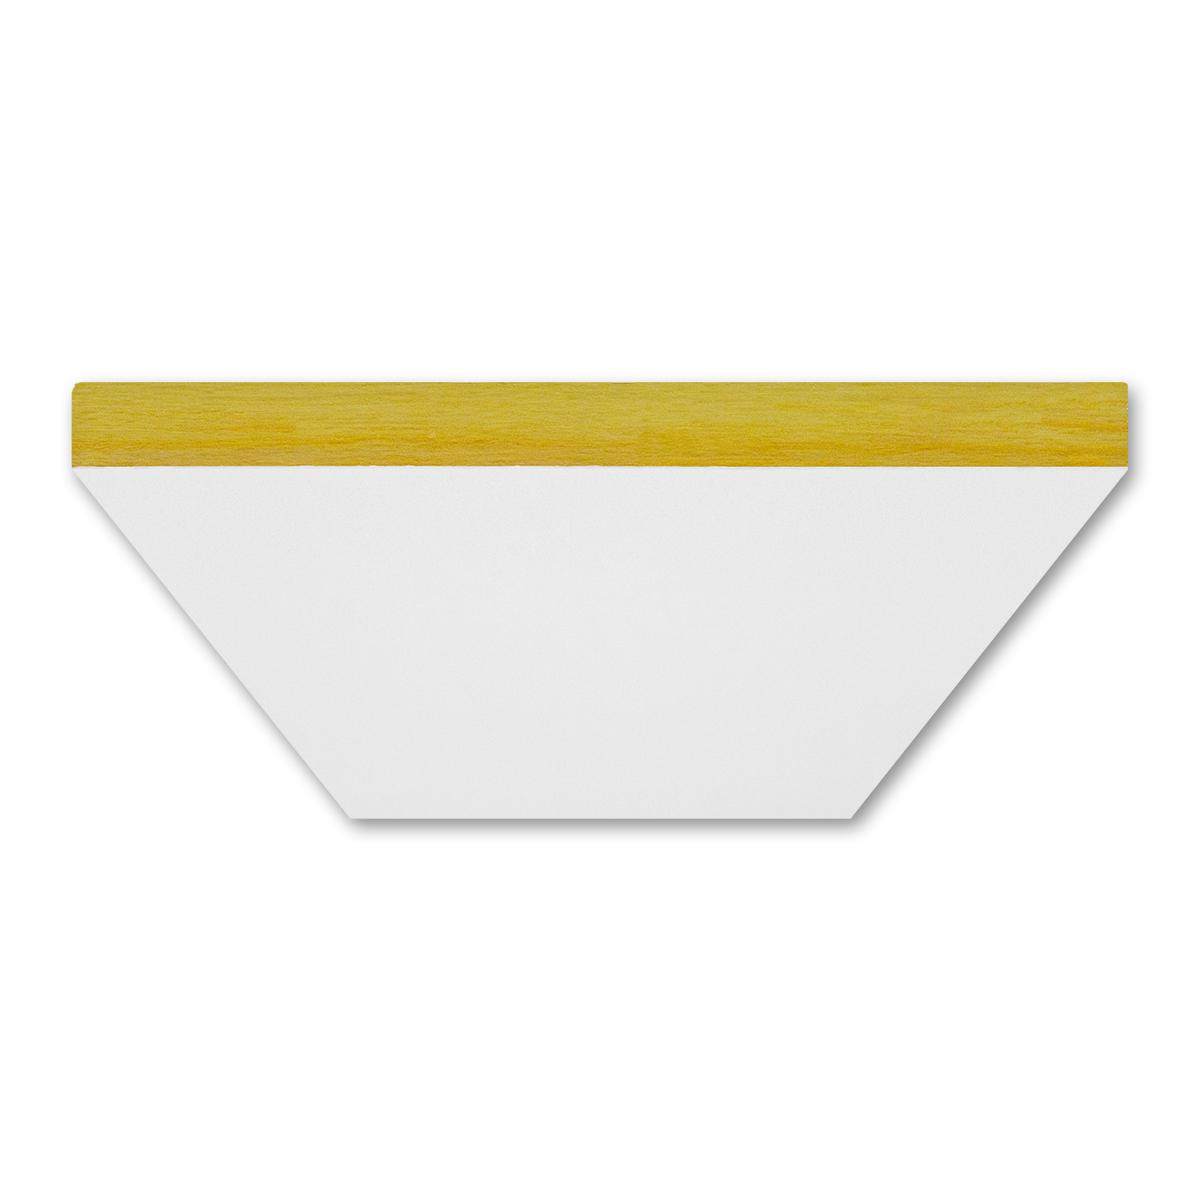 tiles ceiling lay for fireproof acoustical sale dropped tile in suspended building acoustic ceilings